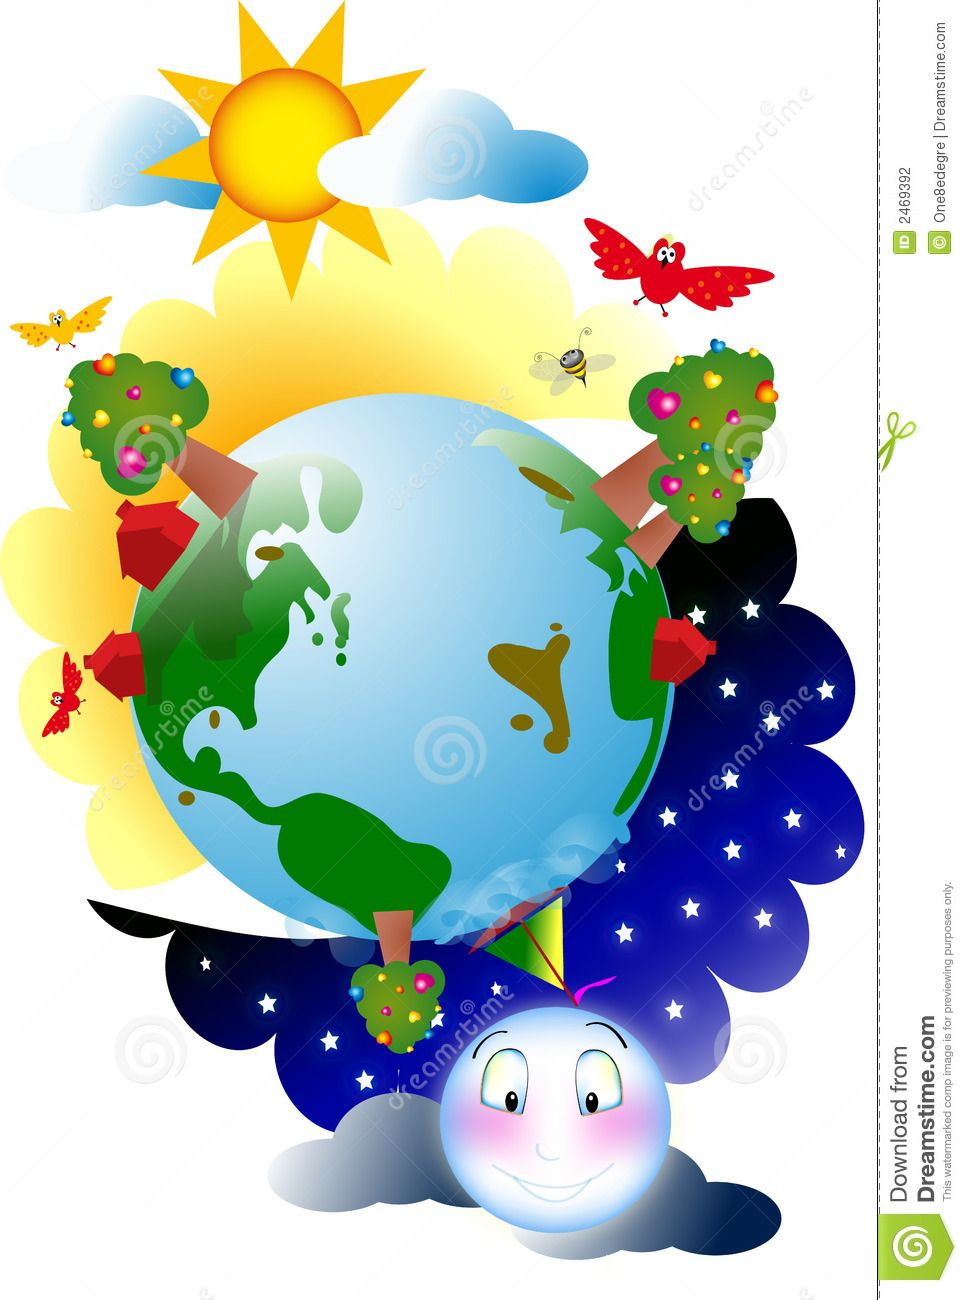 Creation Of Day And Night Stock Photography Image 2469392 Earth Day Clip Art Image Photography Kids Background